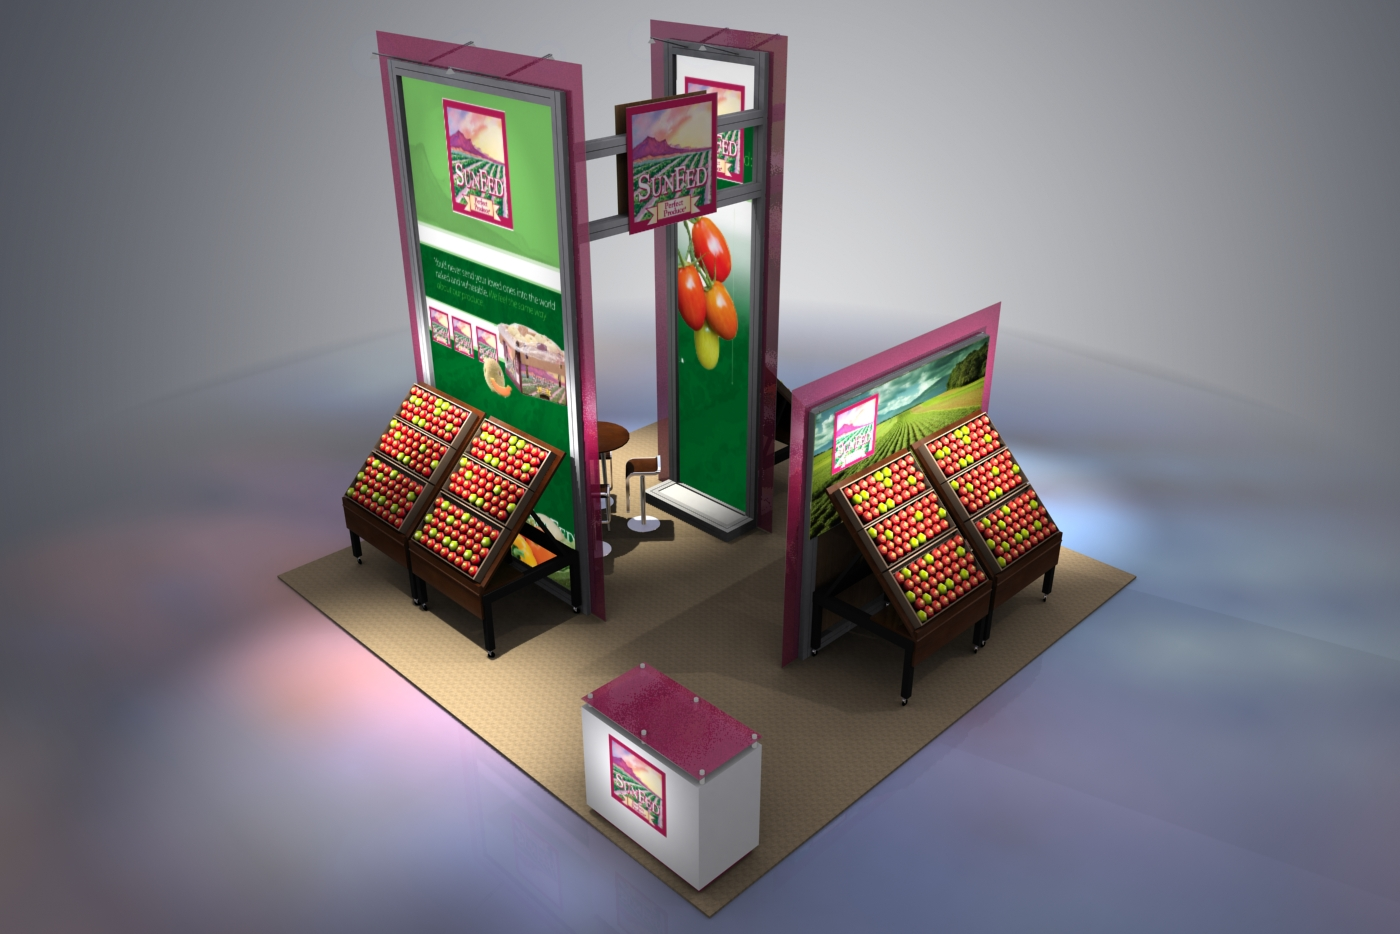 creatve trade show display ideas